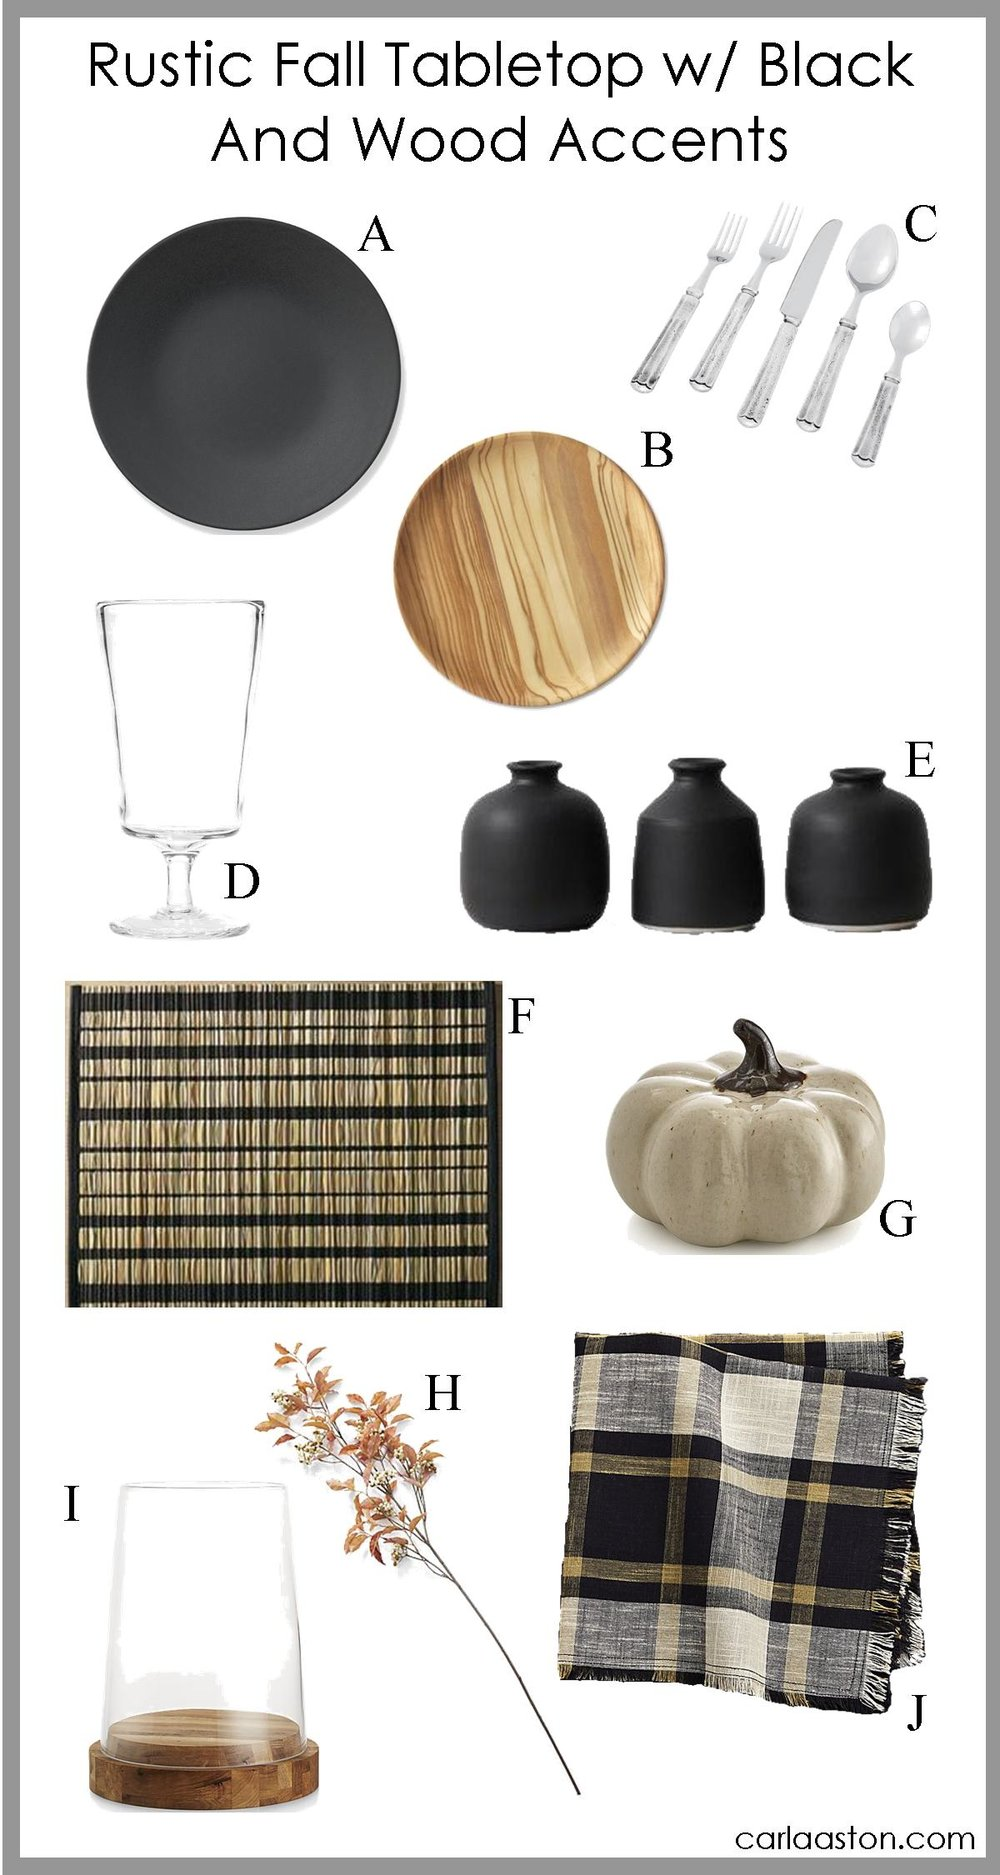 click thru to get links for fall decor shopping!